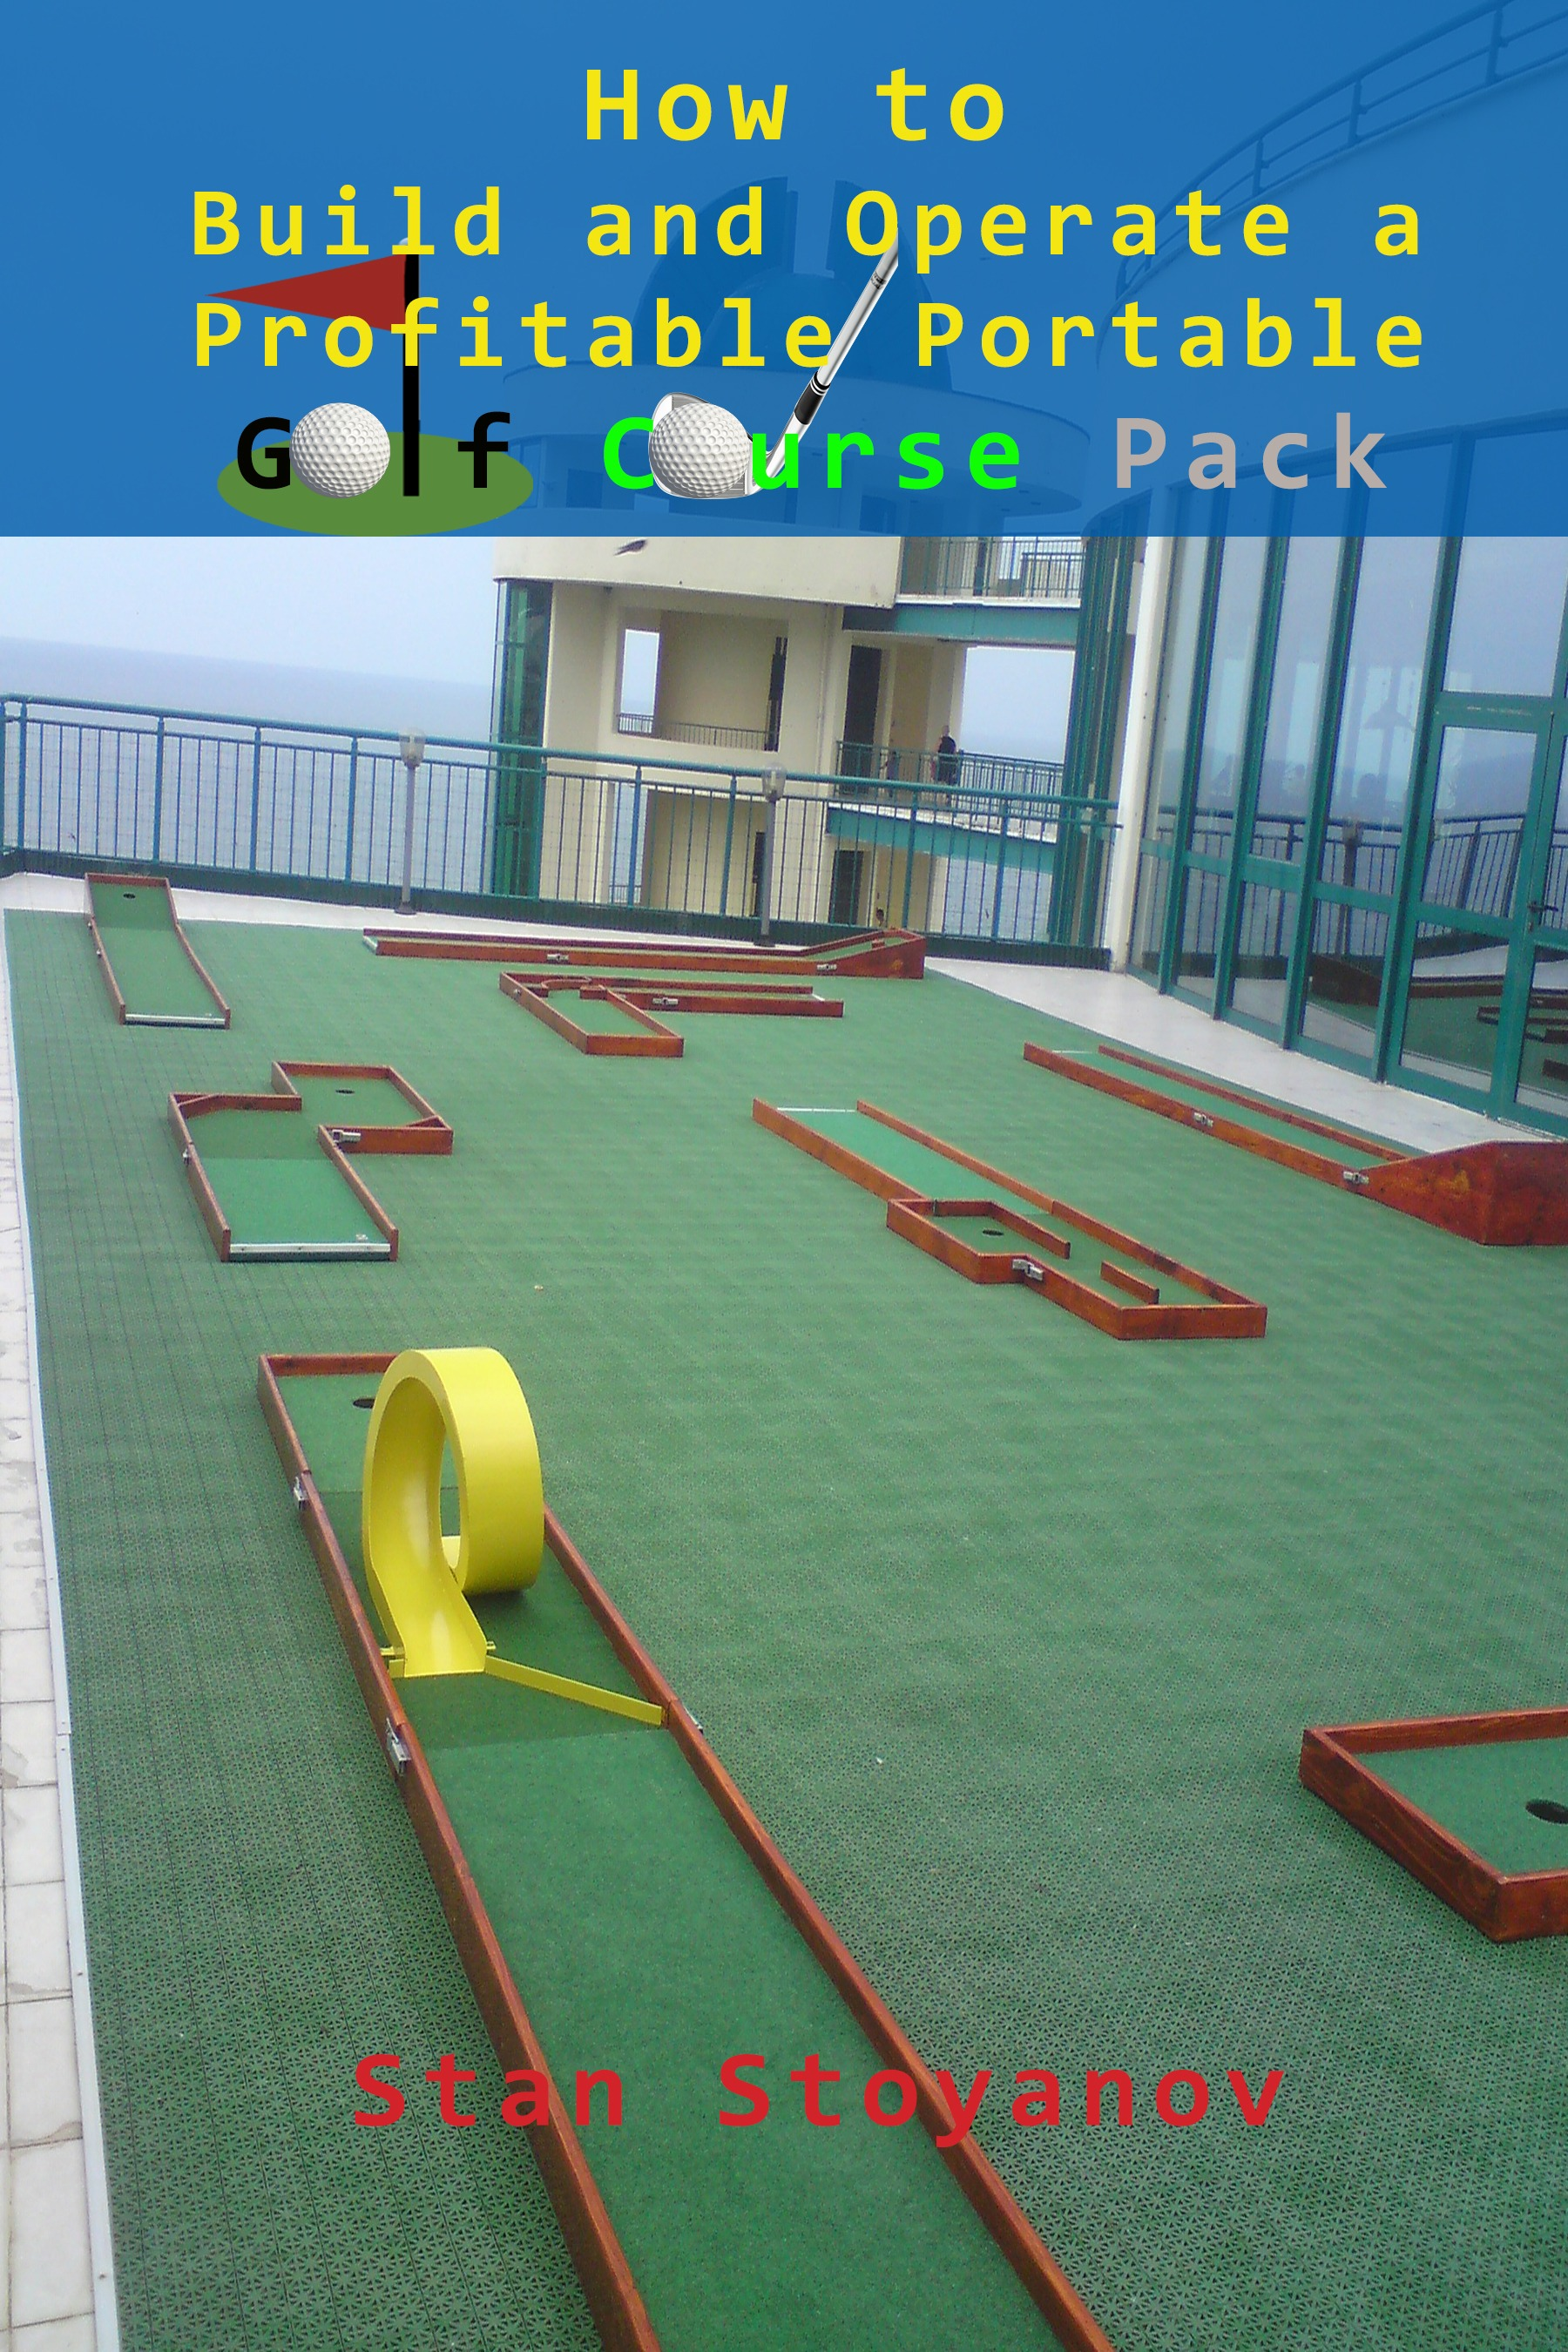 Marvelous Portable Miniature Golf Courses For Indoor And Outdoor Use Download Free Architecture Designs Intelgarnamadebymaigaardcom